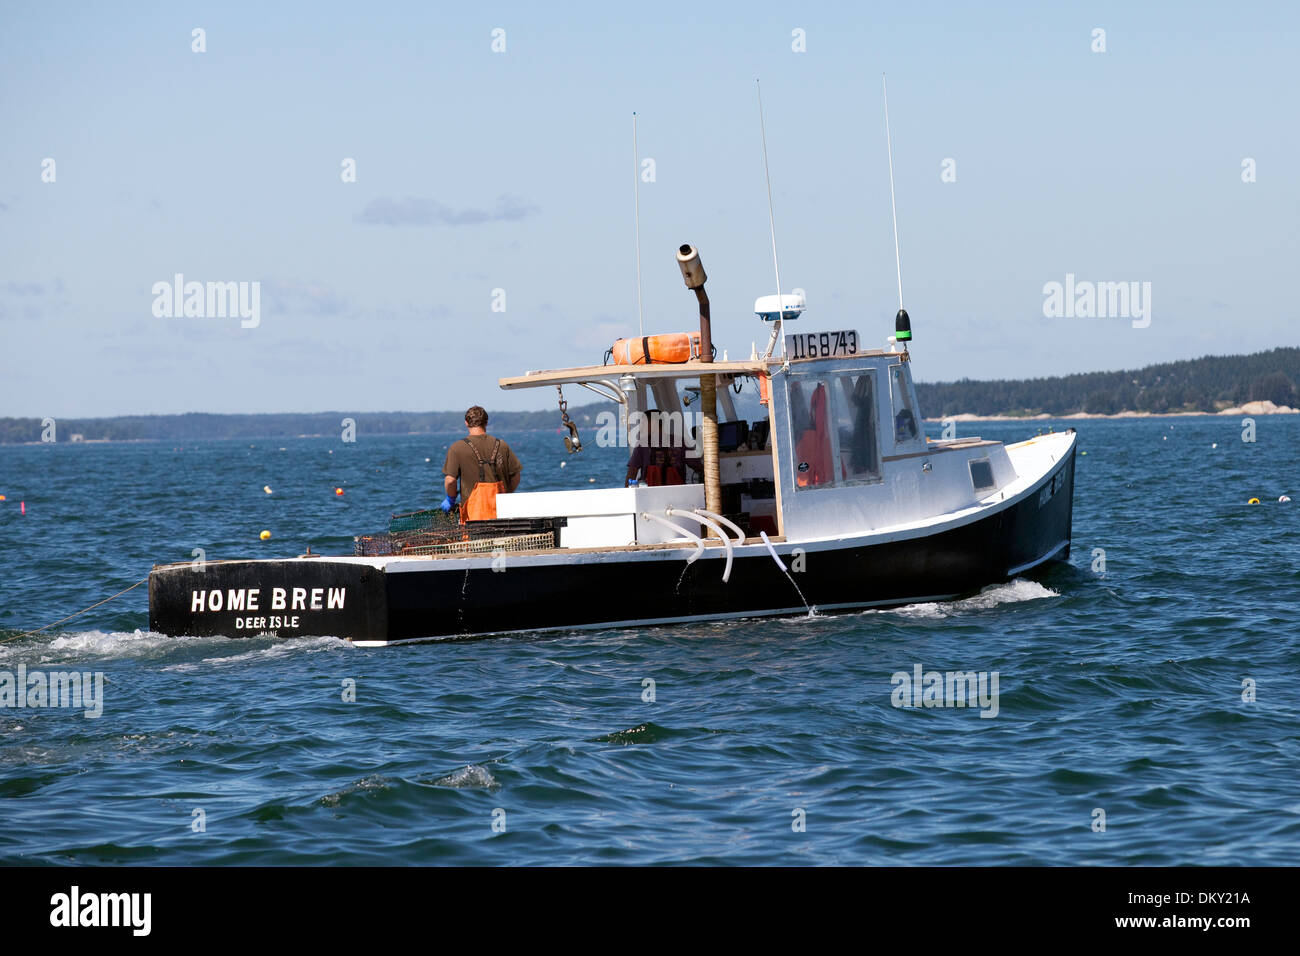 Working lobster boat, Maine Stock Photo: 63903878 - Alamy